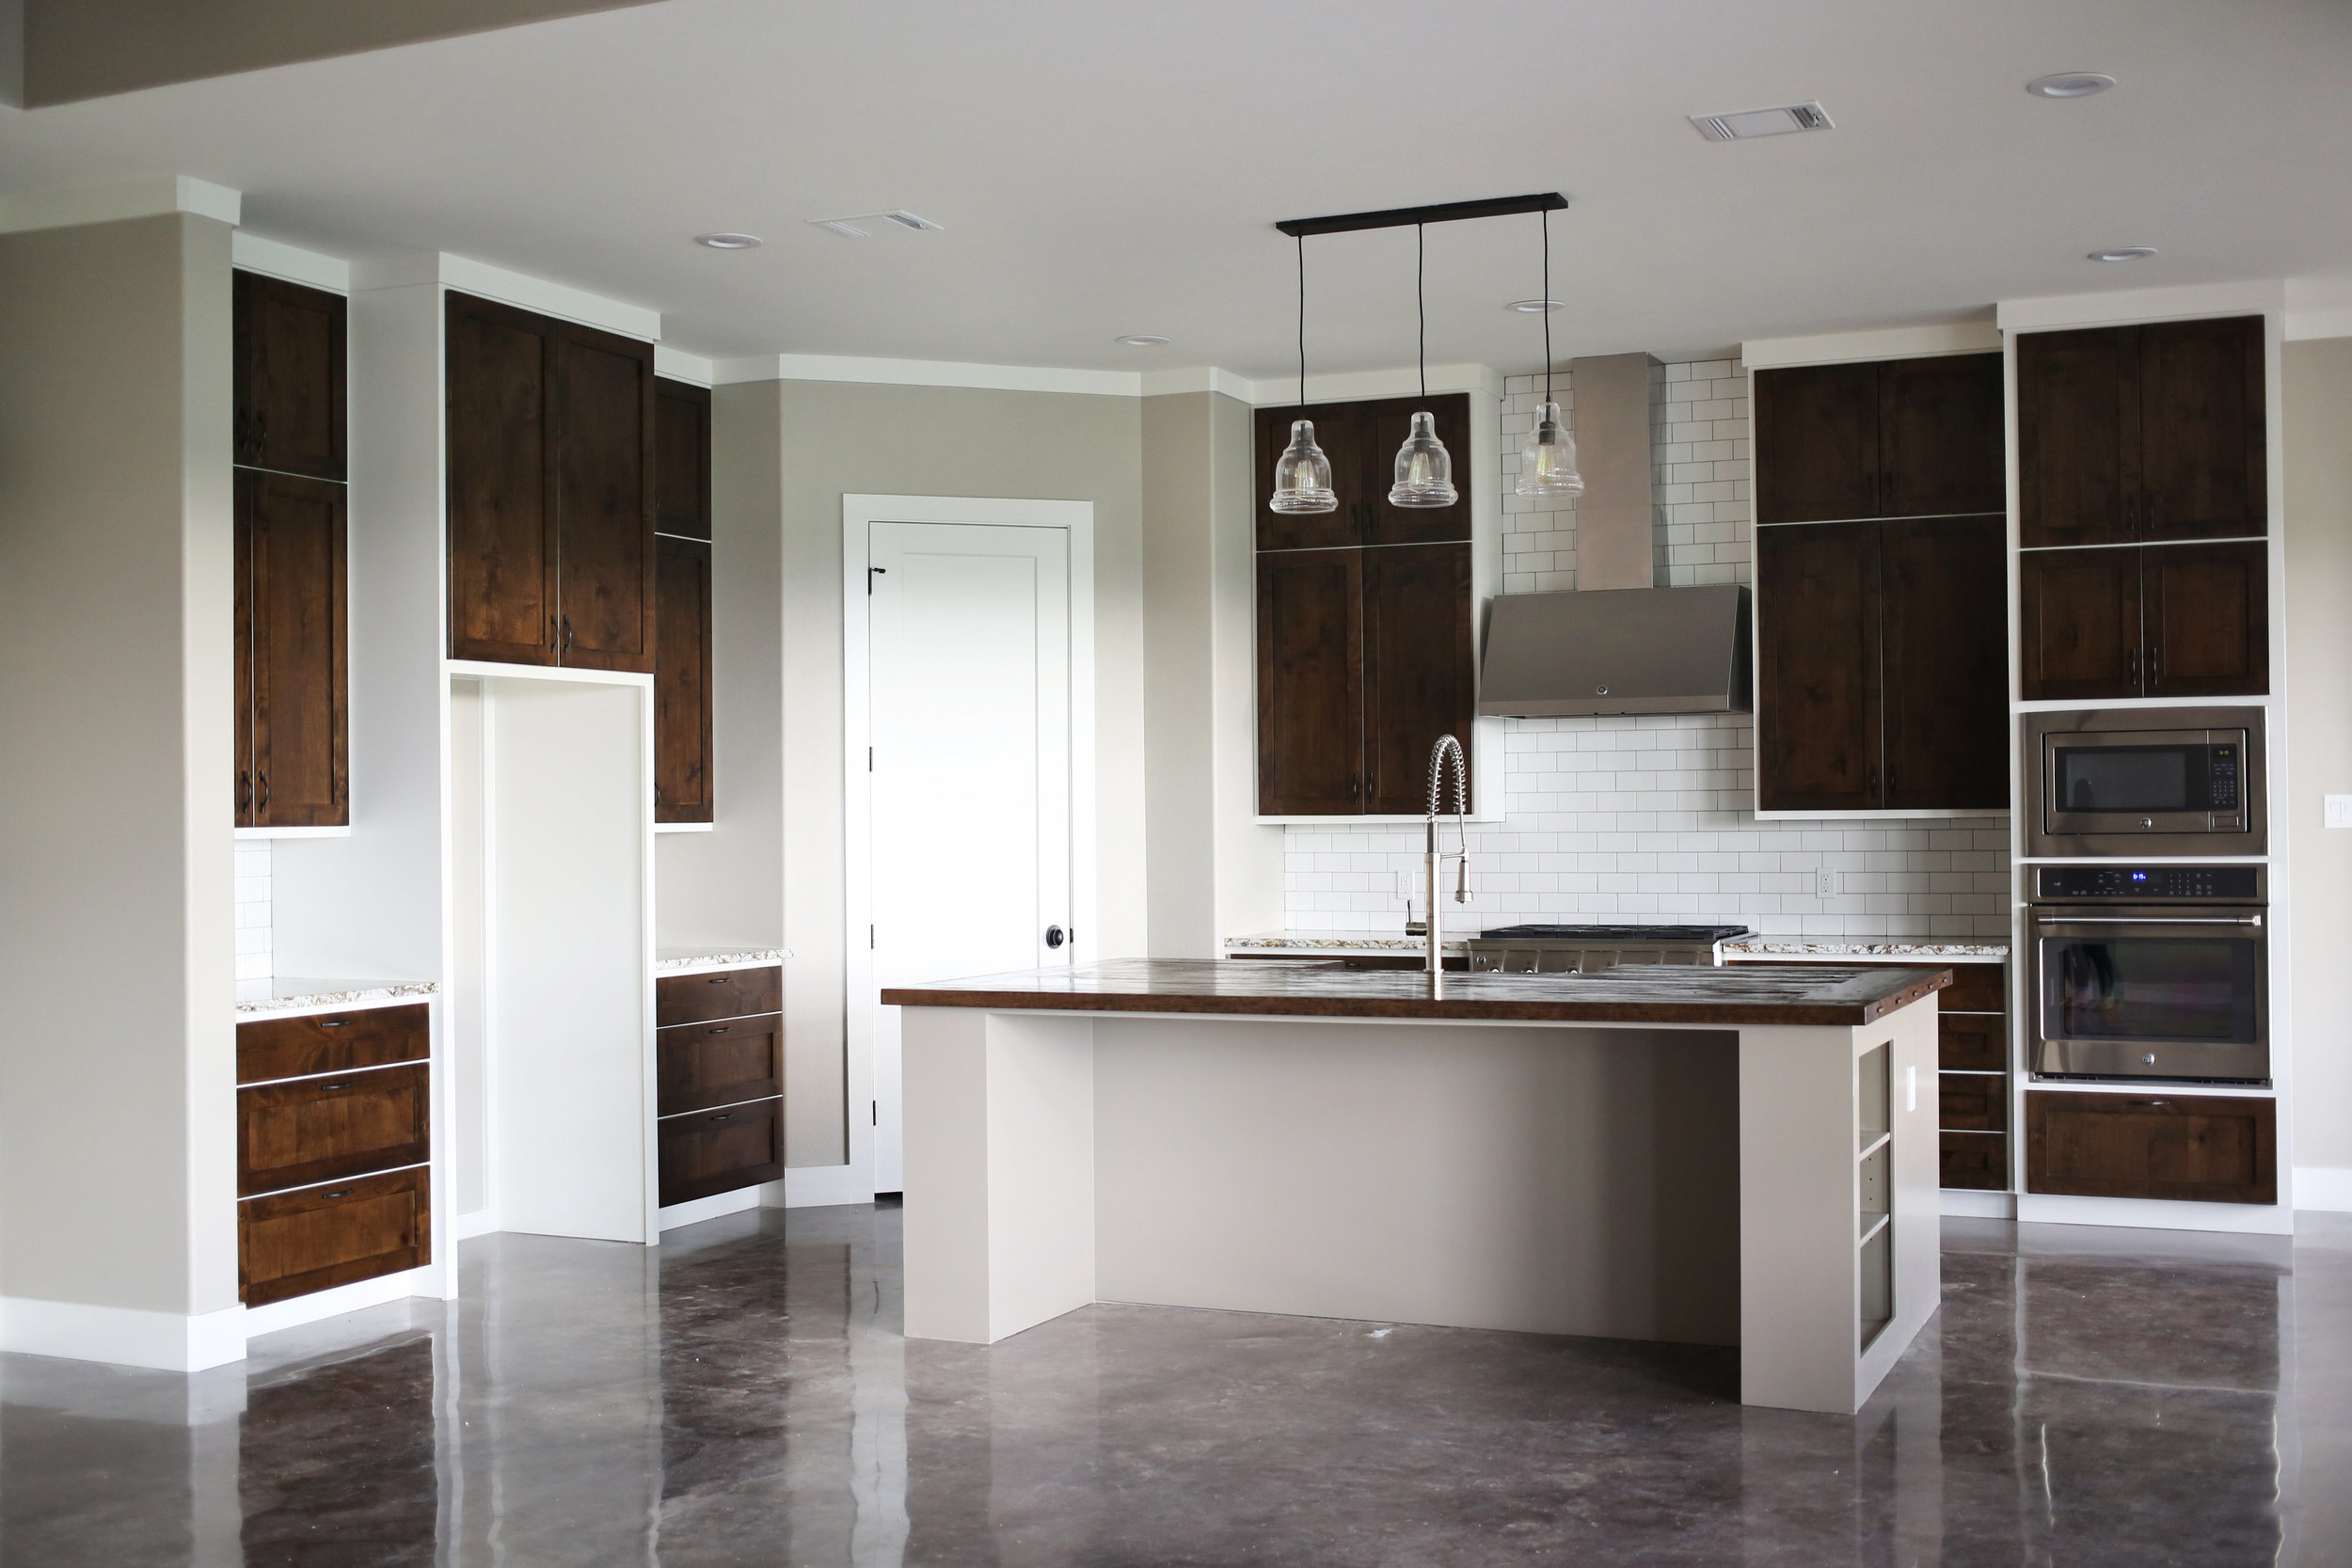 Two-toned cabinetry